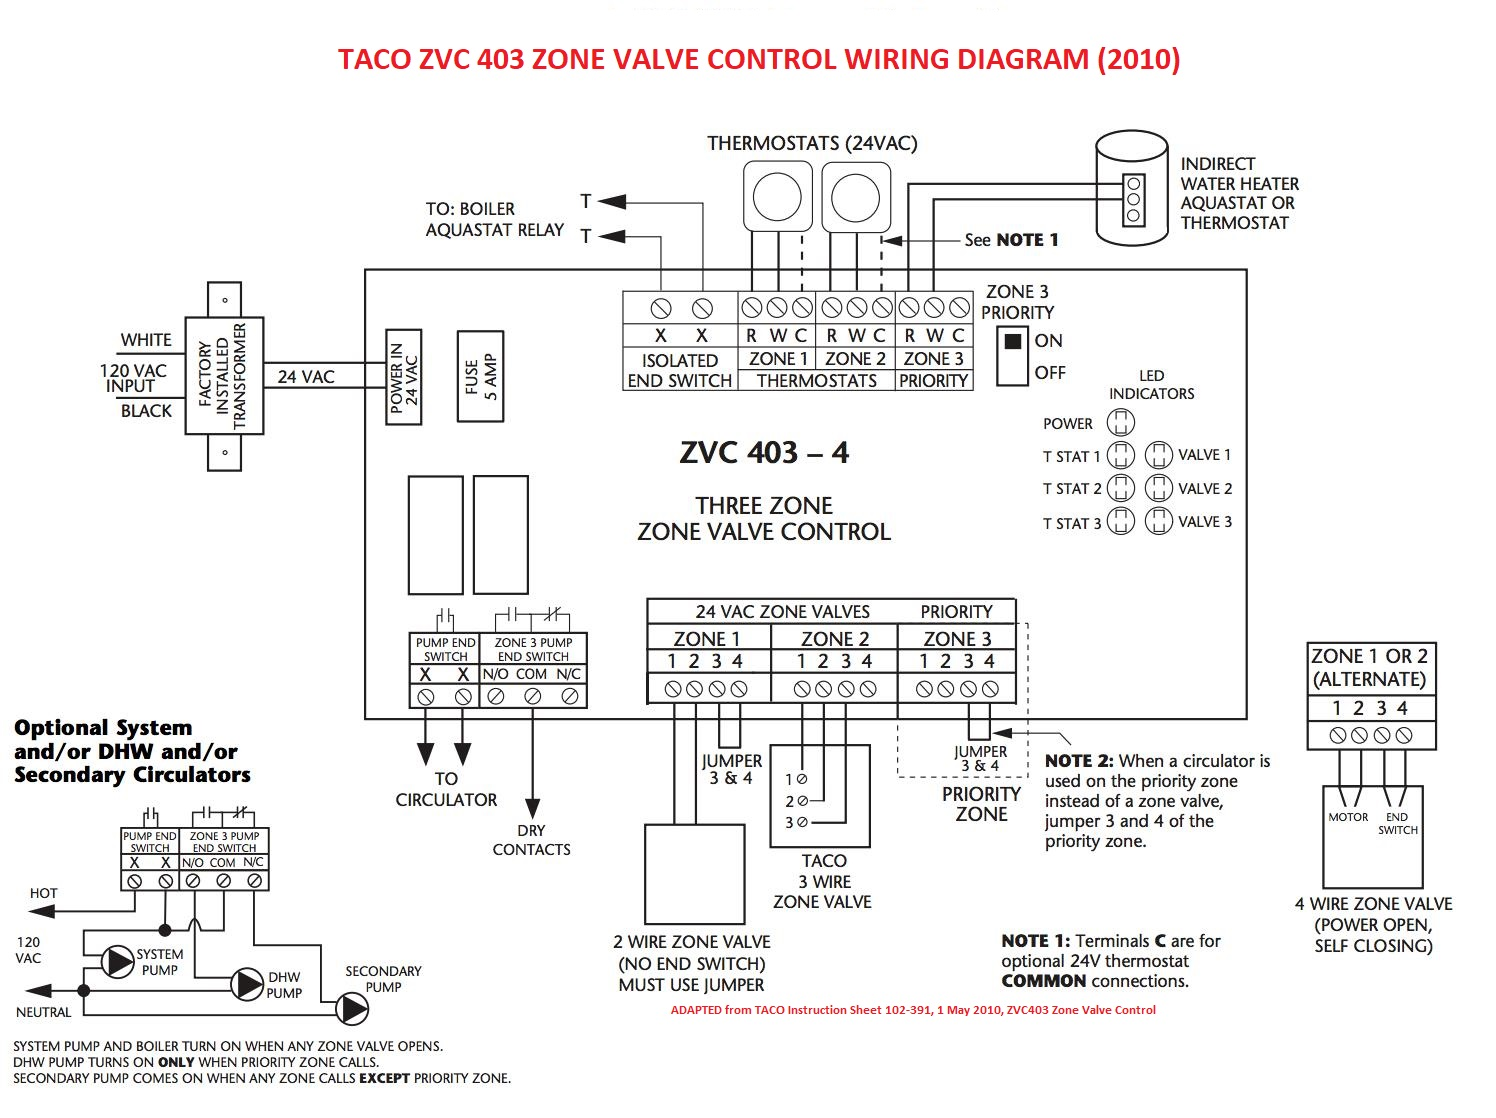 3 way switch with pilot light diagram msd 6al wiring lt1 zone valve installation & instructions: guide to heating system valves - ...